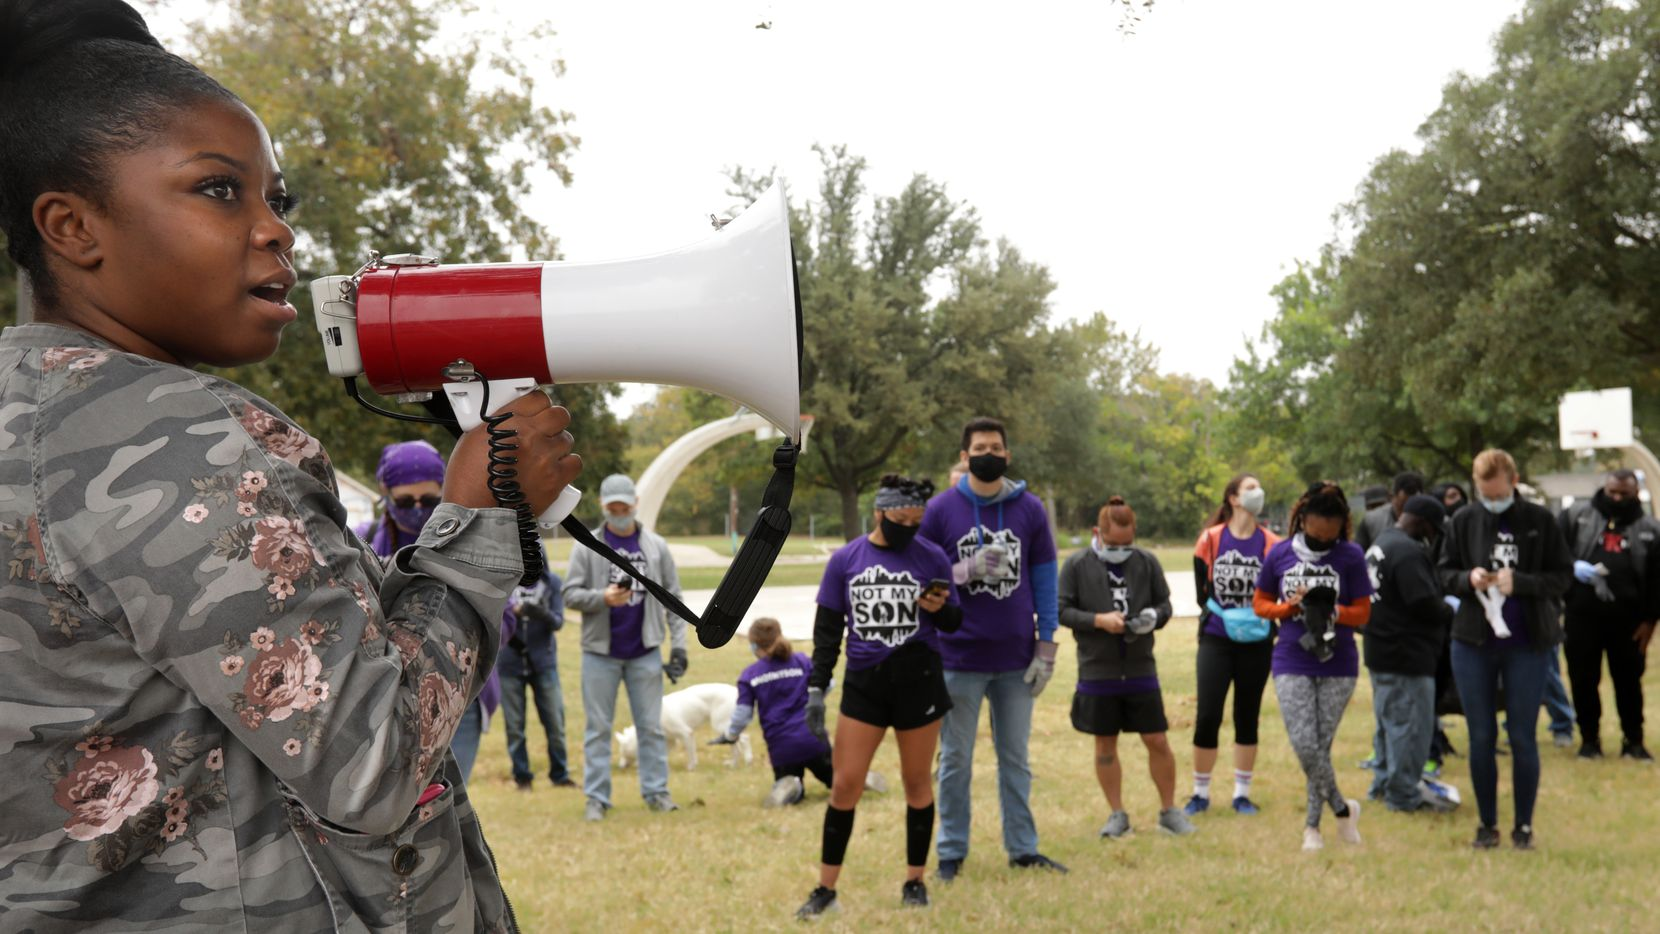 Tramonica Brown asked volunteers to connect with the Not My Son nonprofit on social media before they headed out to clean up the neighborhood around the Martin Luther King Jr. Community Center in South Dallas on Oct. 25, 2020.